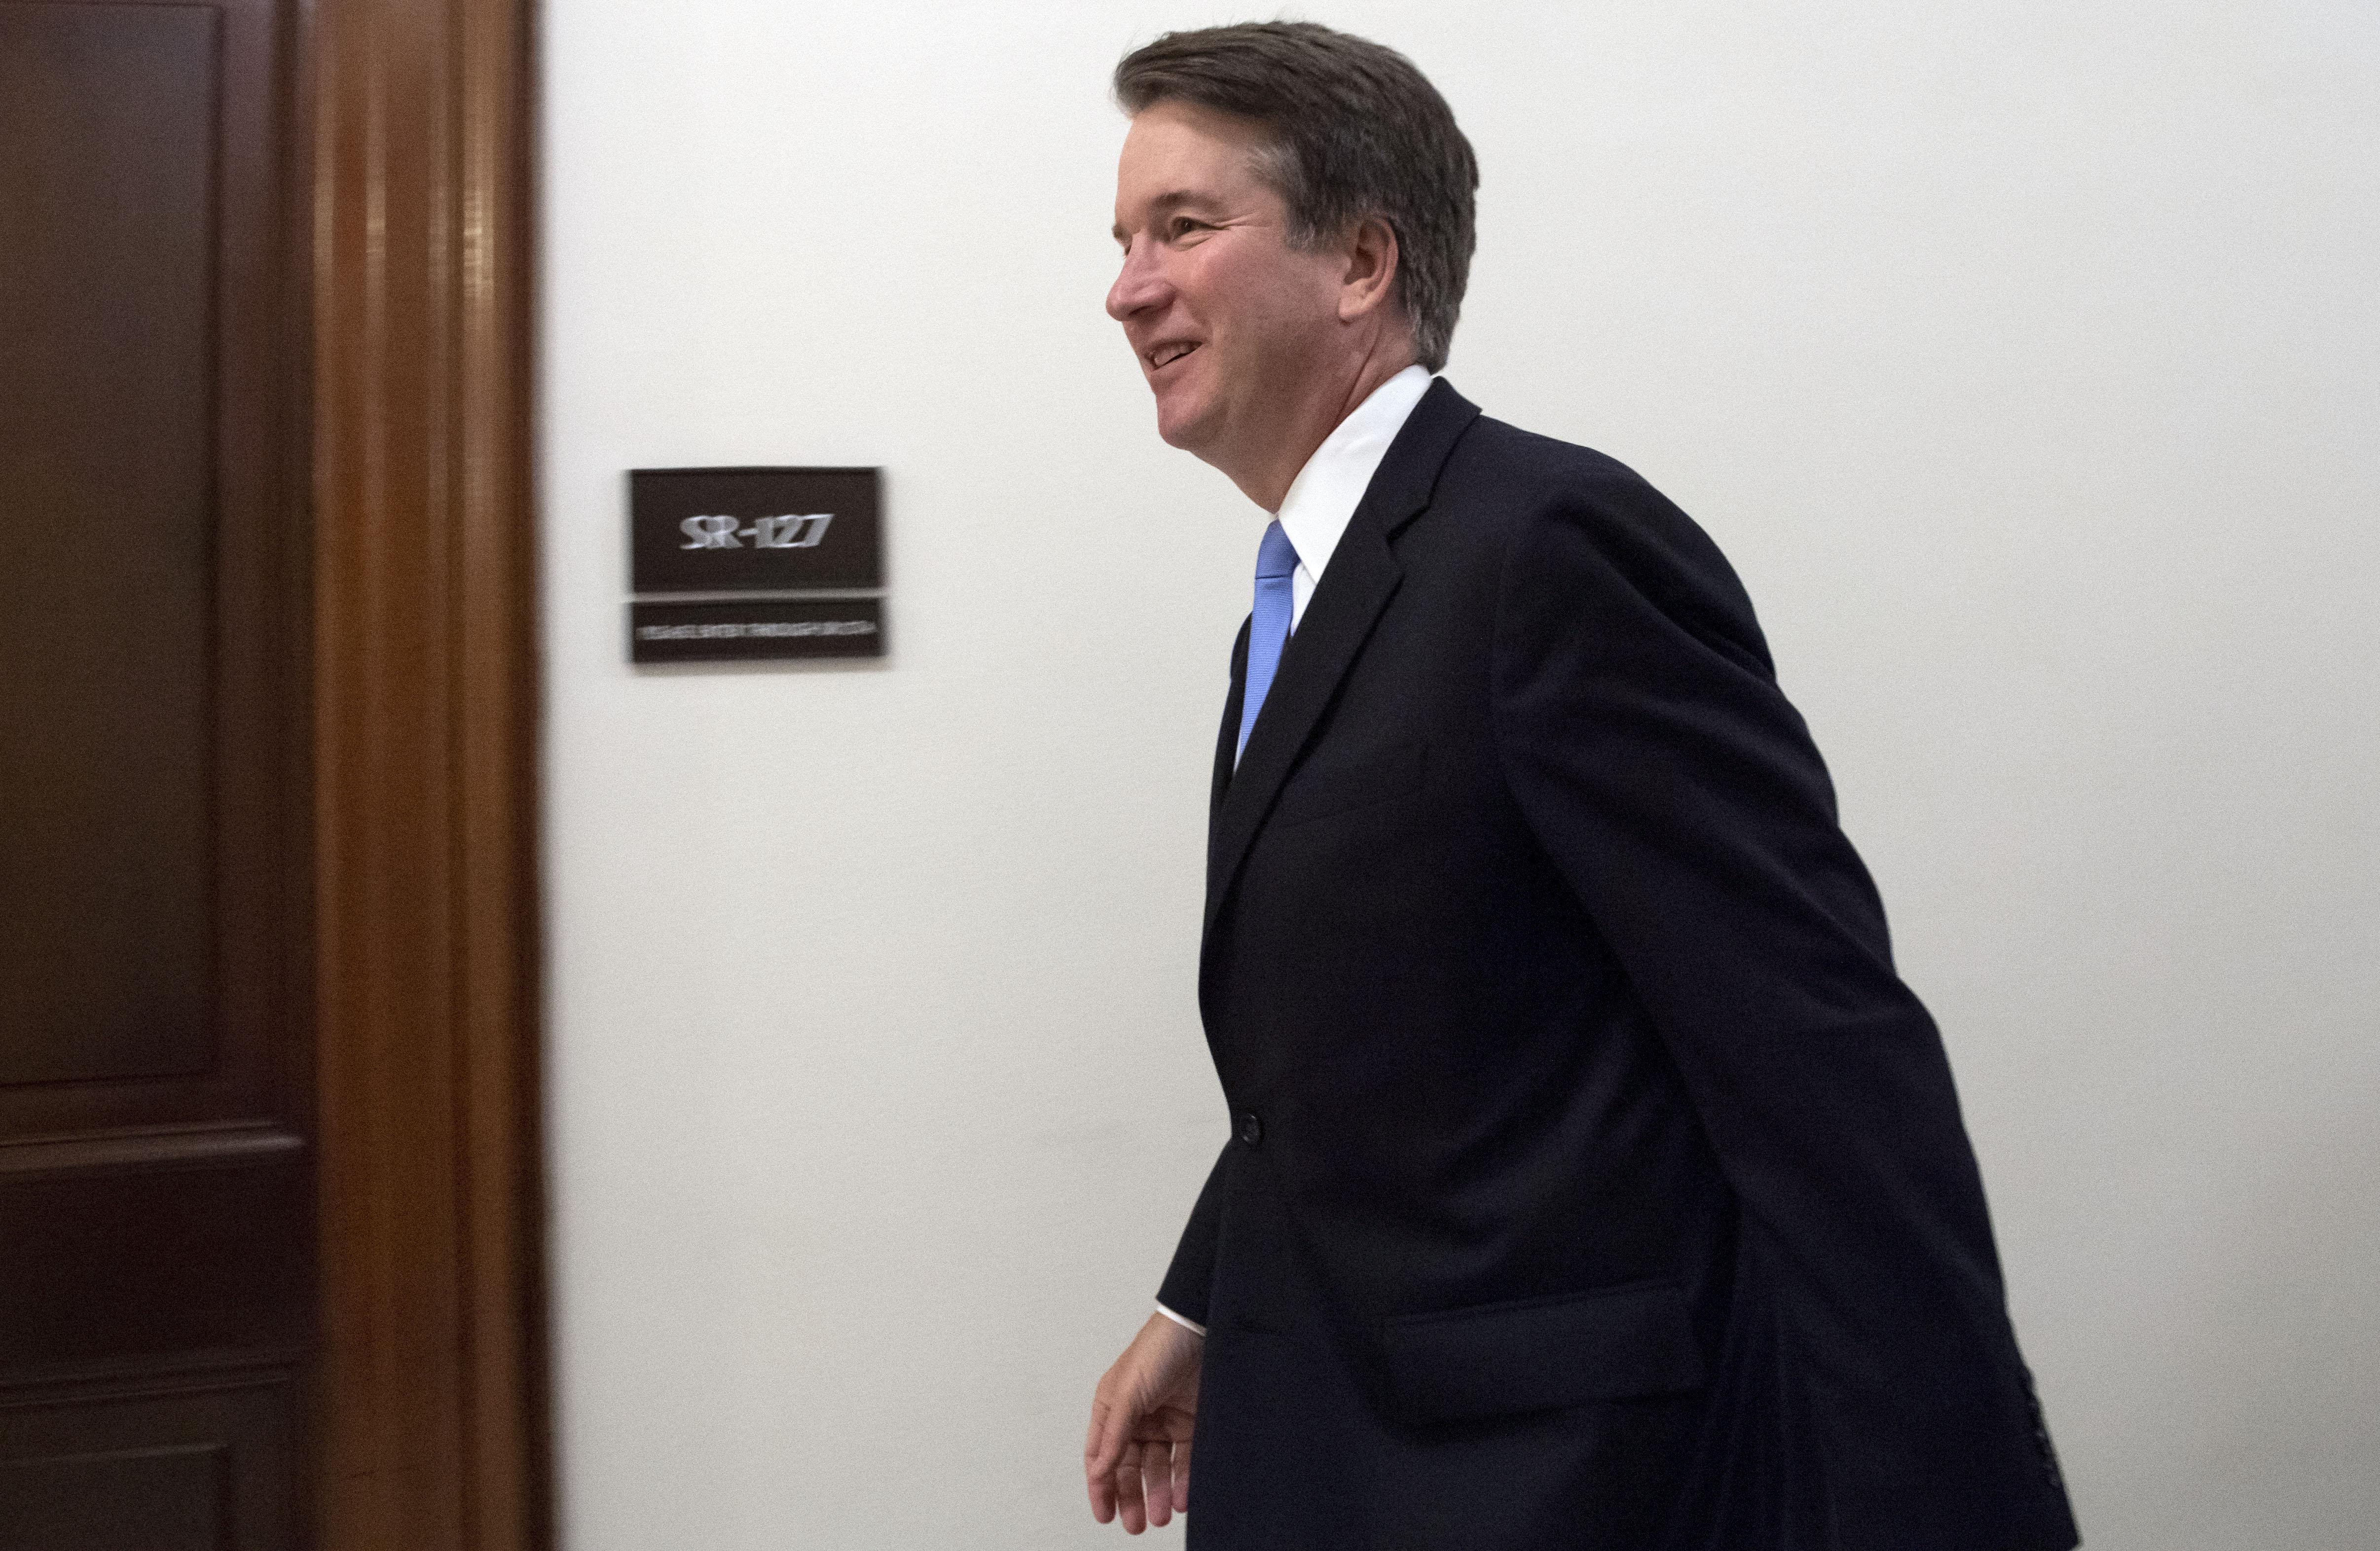 Supreme Court associate justice nominee Brett Kavanaugh arrives for a meeting with Senator Chris Coons, Democrat of Delaware, on Capitol Hill in Washington, D.C. on August 23, 2018.